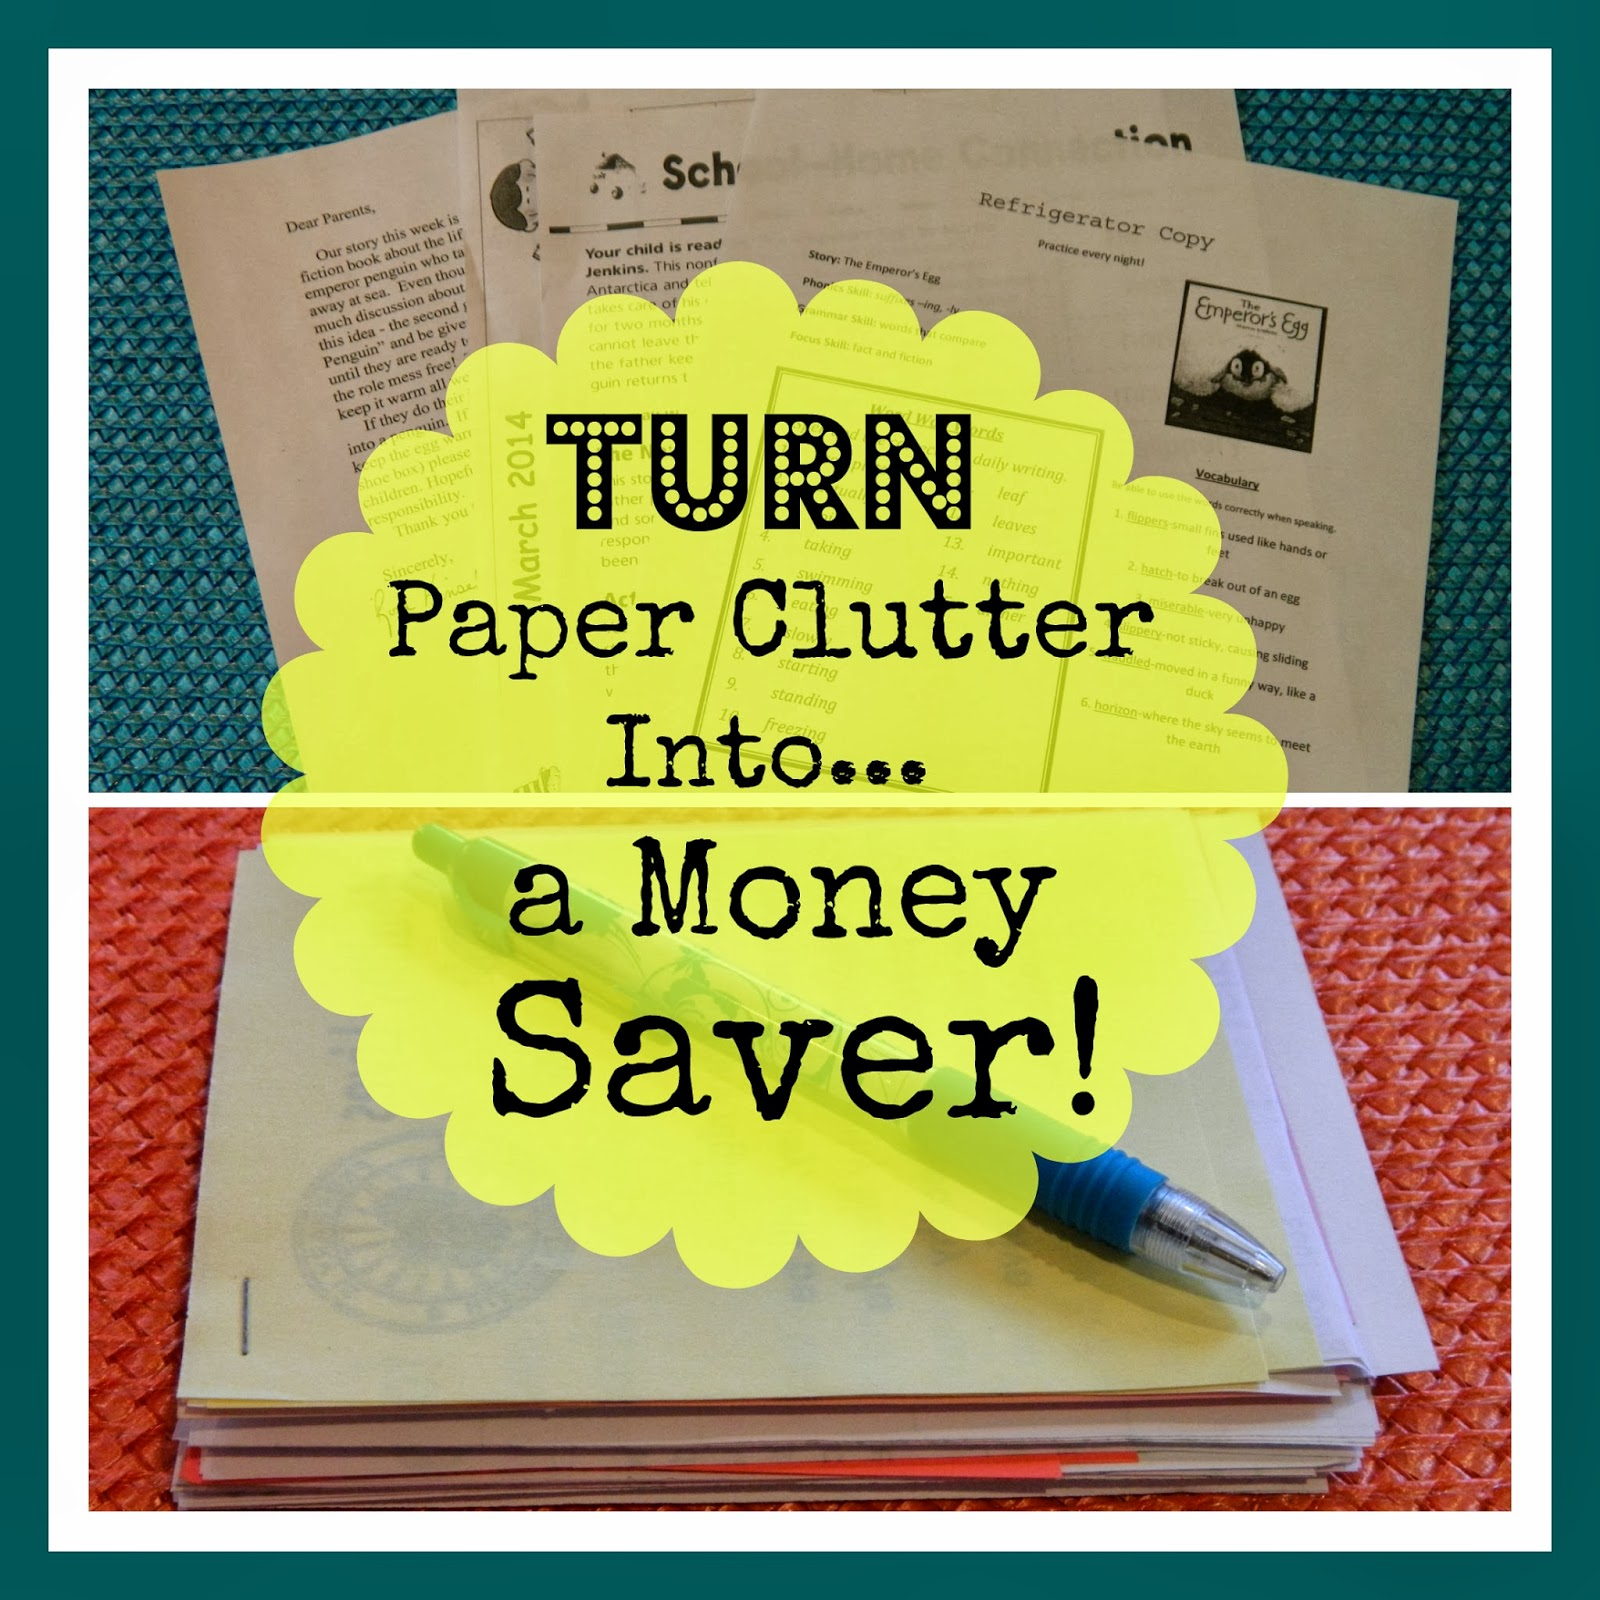 Turn paper clutter into a money saver, scrap paper, make your own note tablet